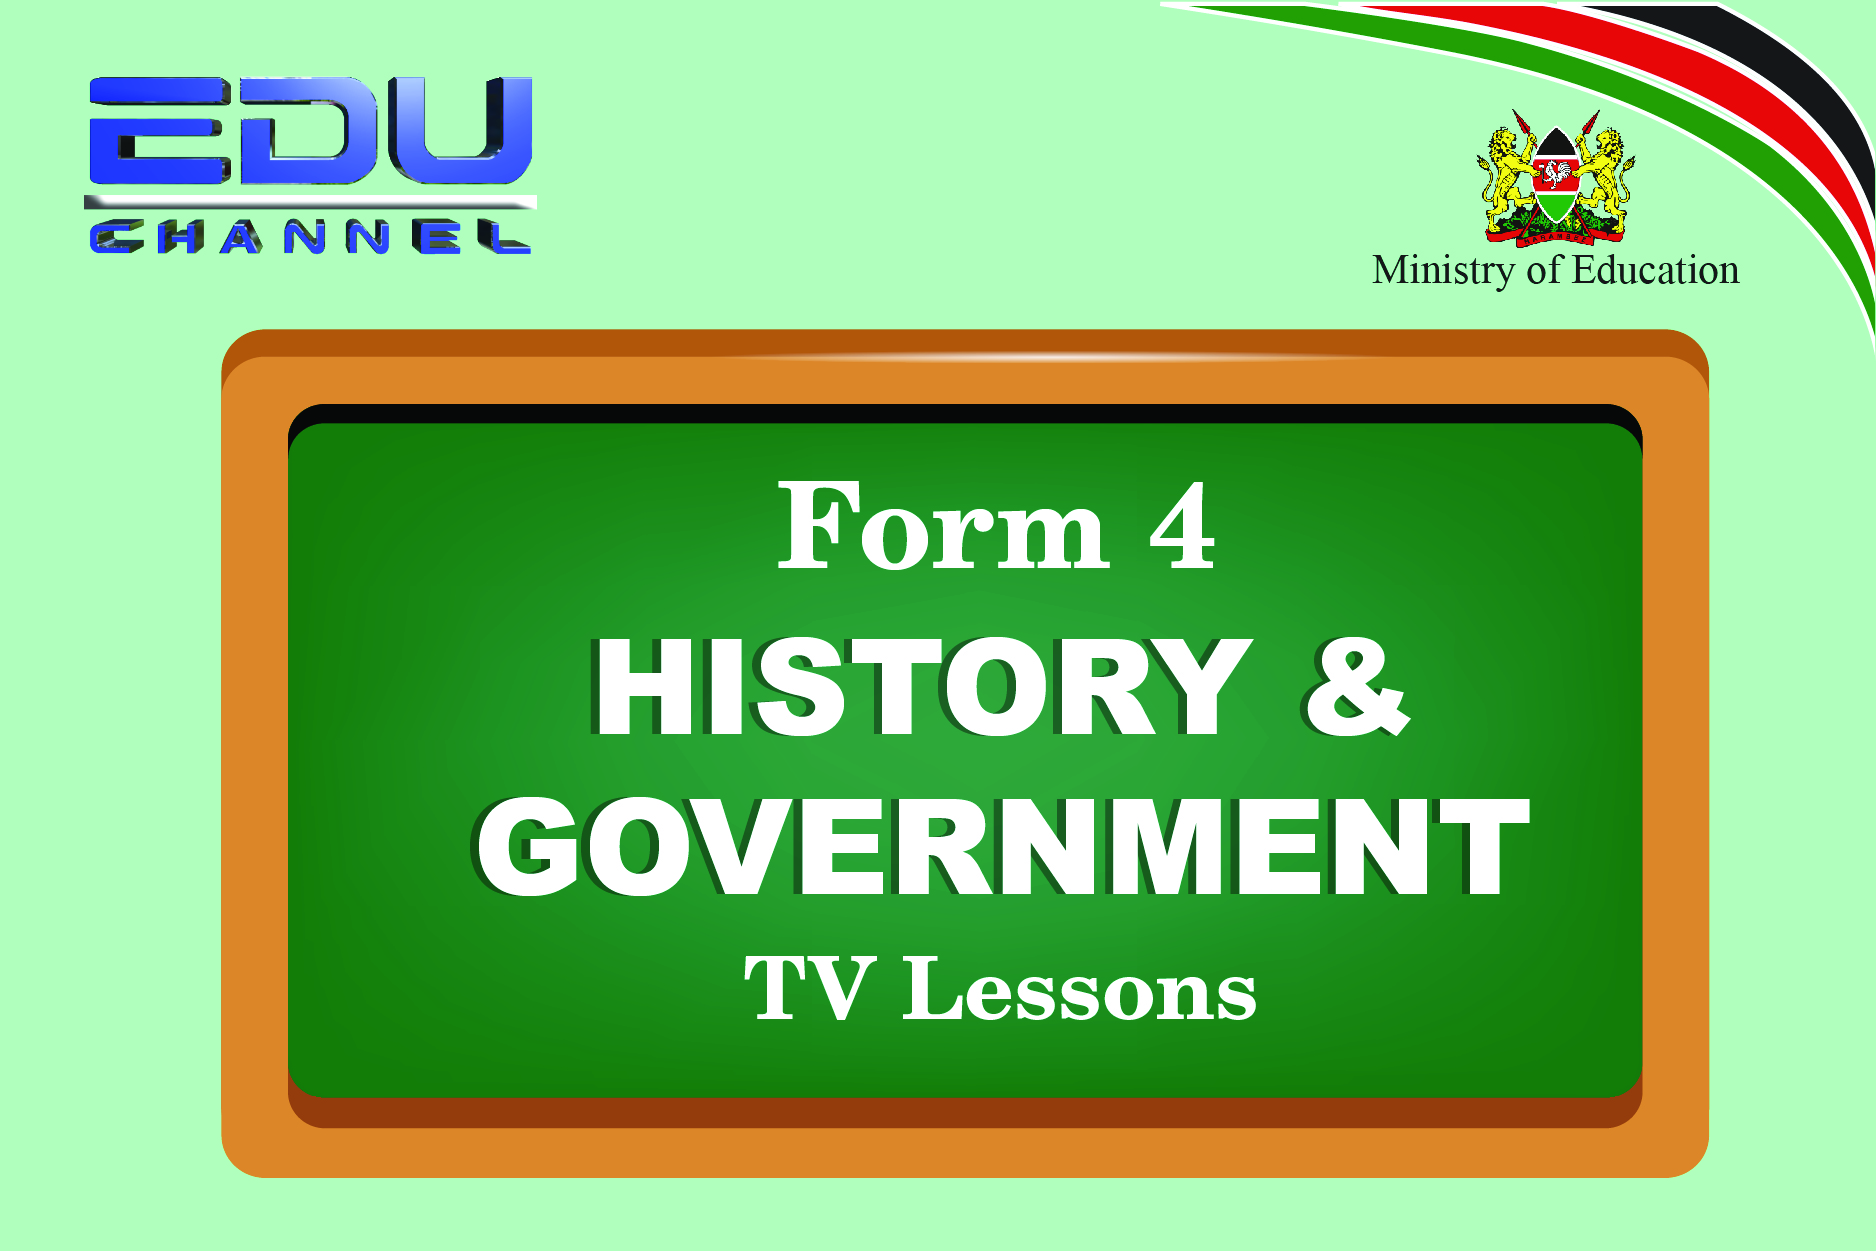 Form 4 History and Government Lesson 1: World War I